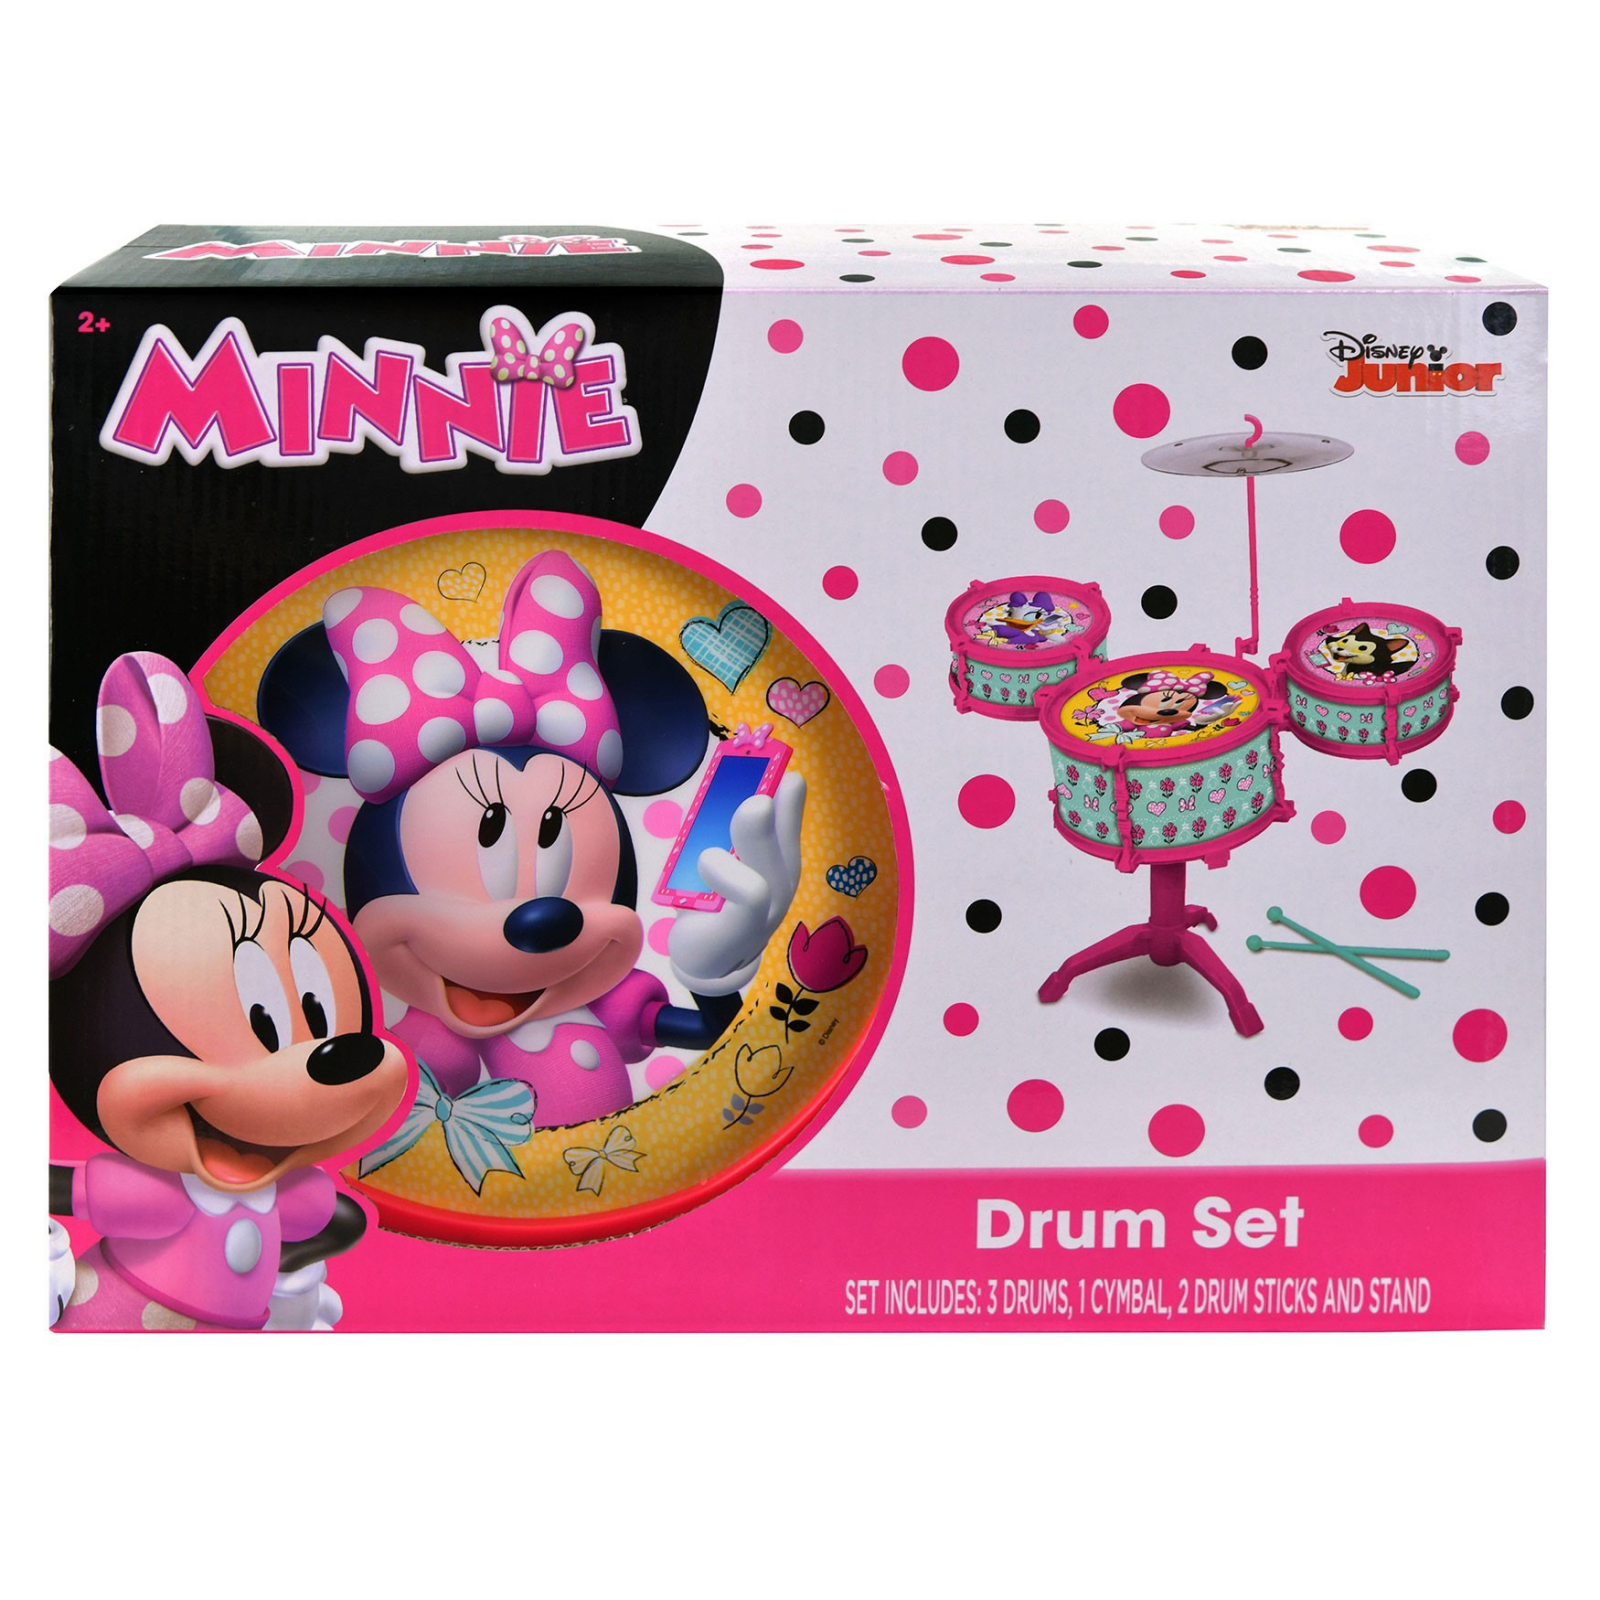 Minnie Mouse Childrens Music Drum Set With Sticks And Stand